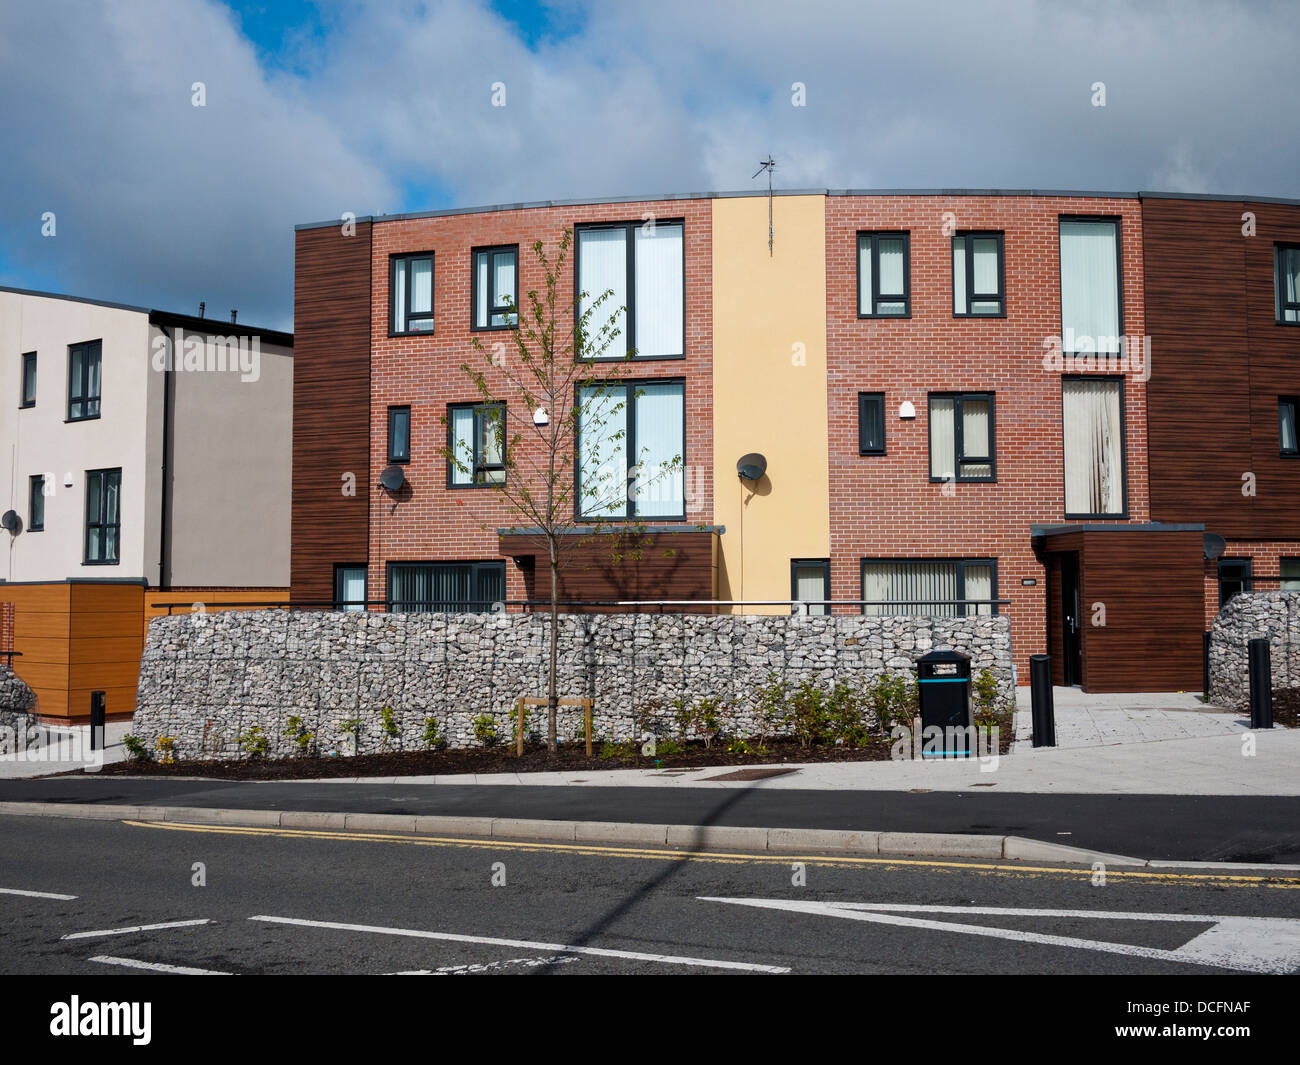 New housing developments Oldham town centre, Oldham, Greater Manchester, UK. - Stock Image